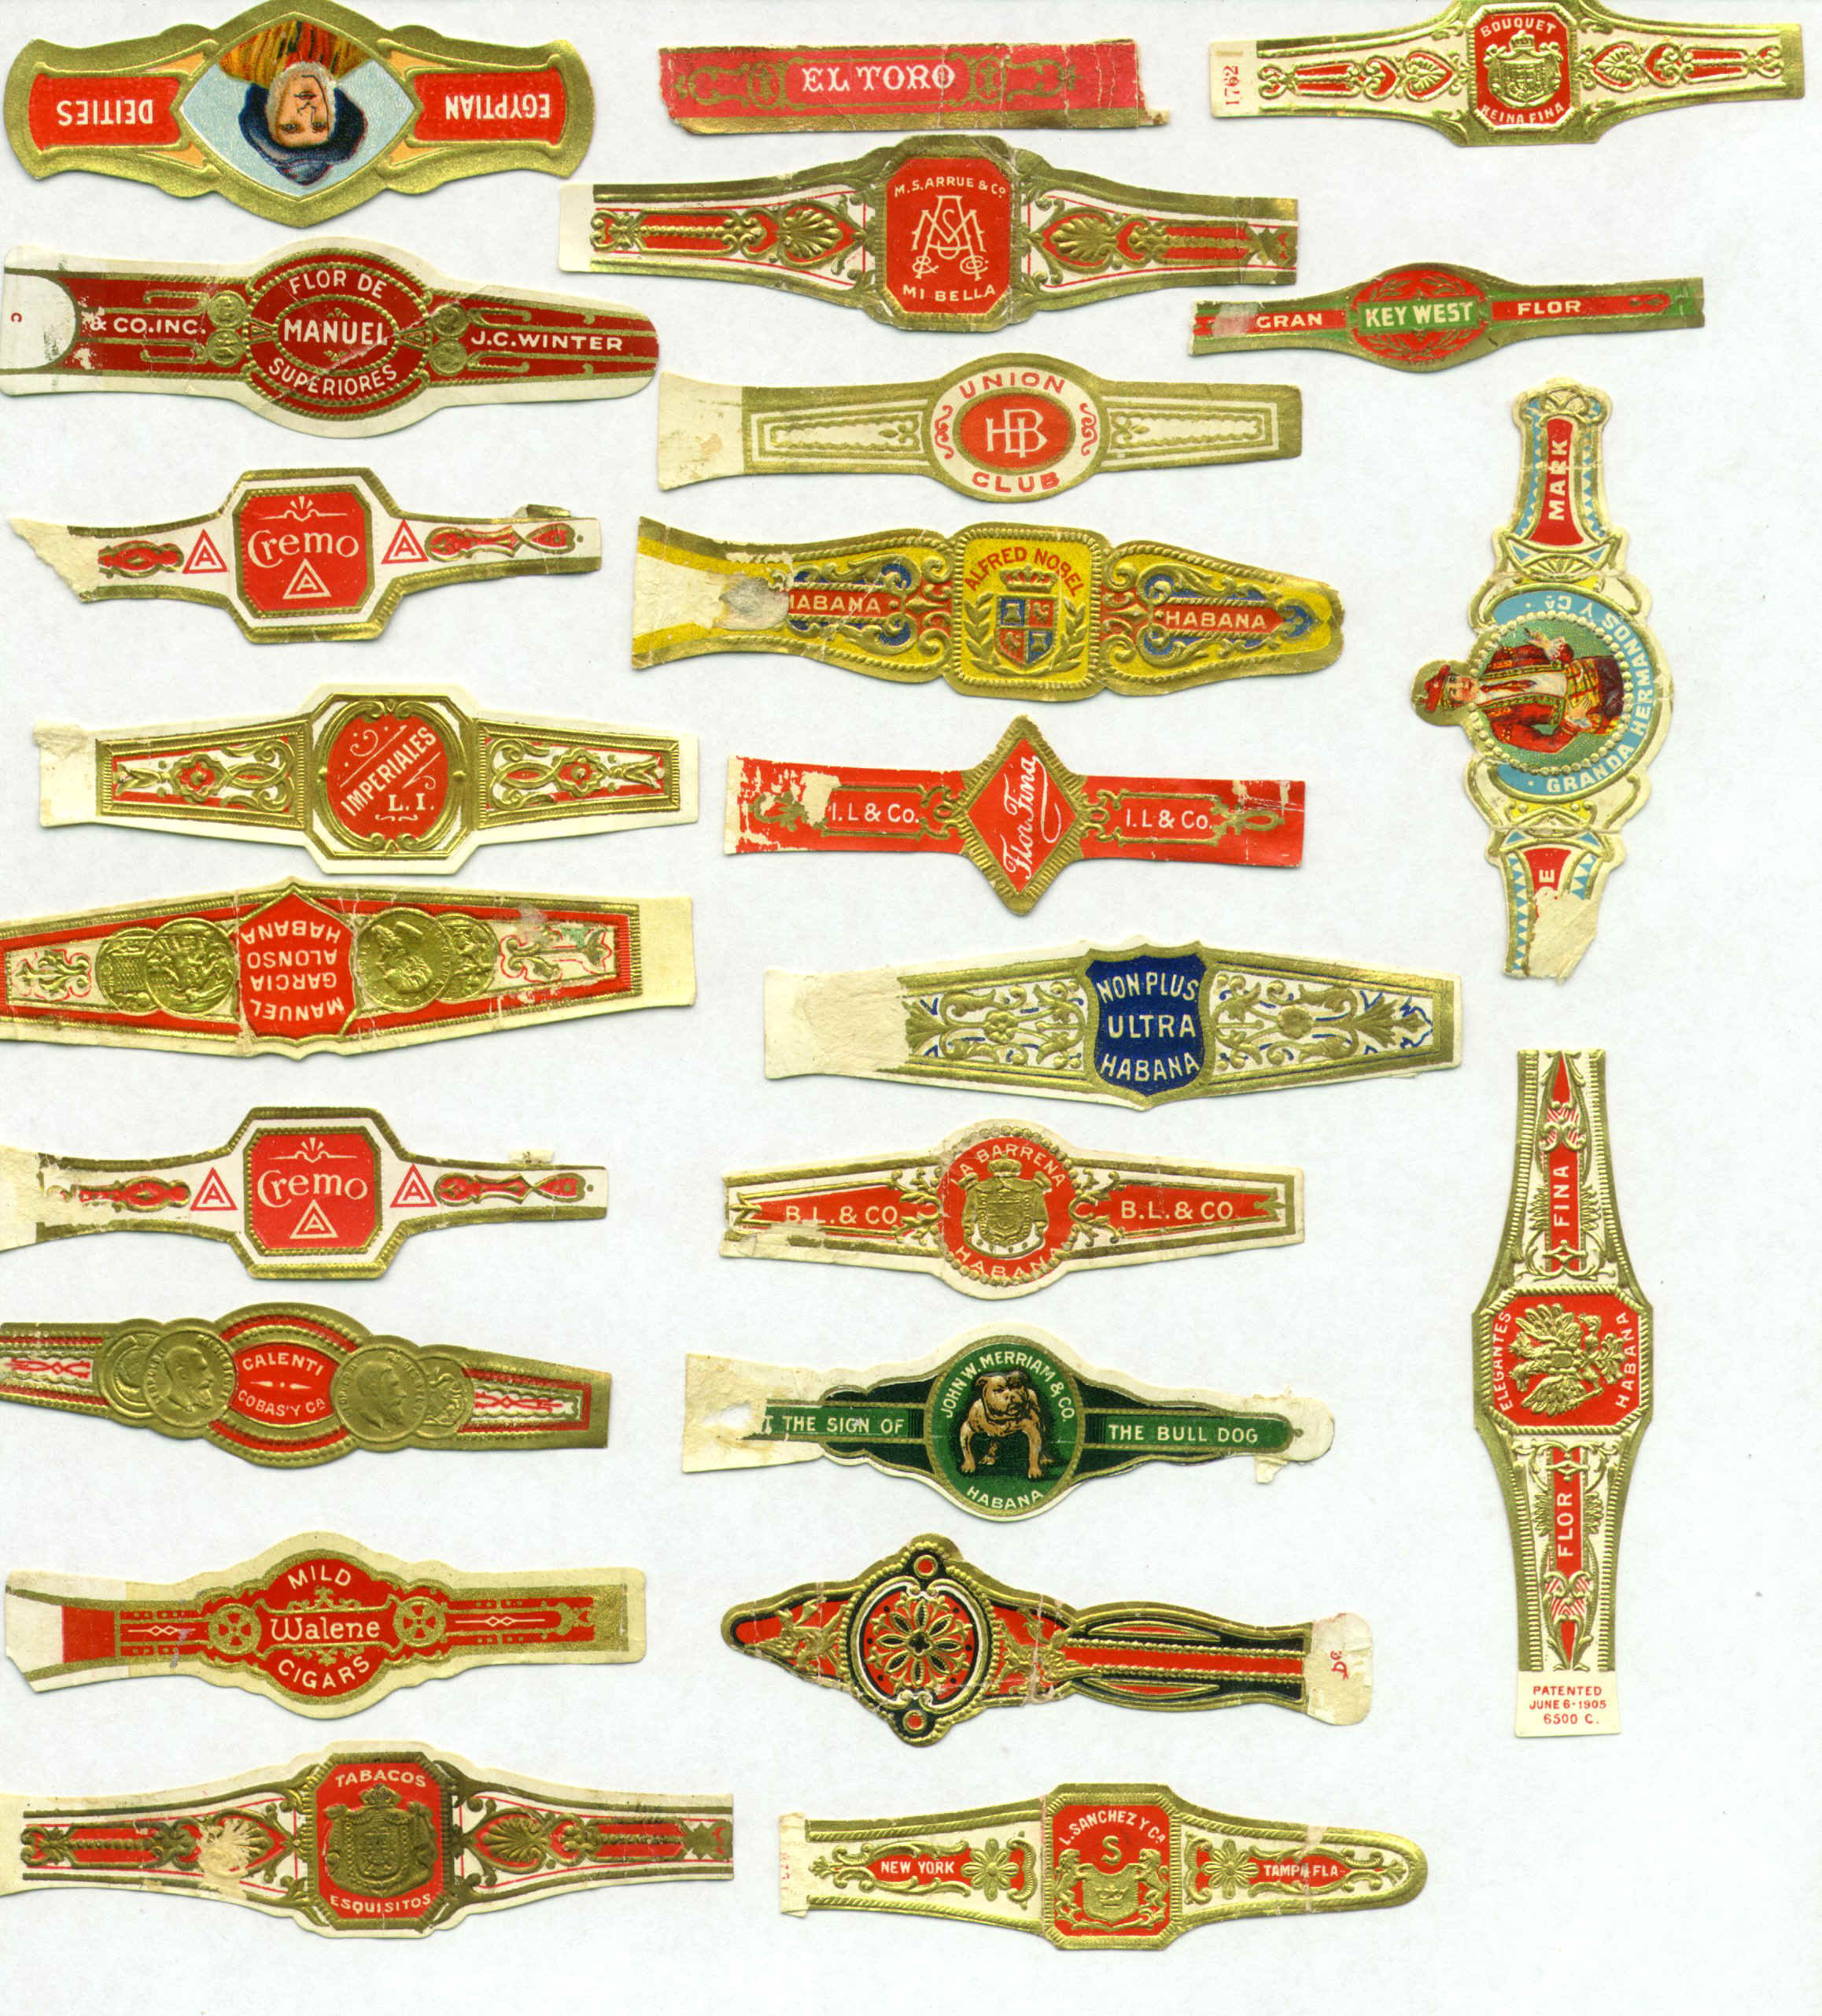 cigar bands